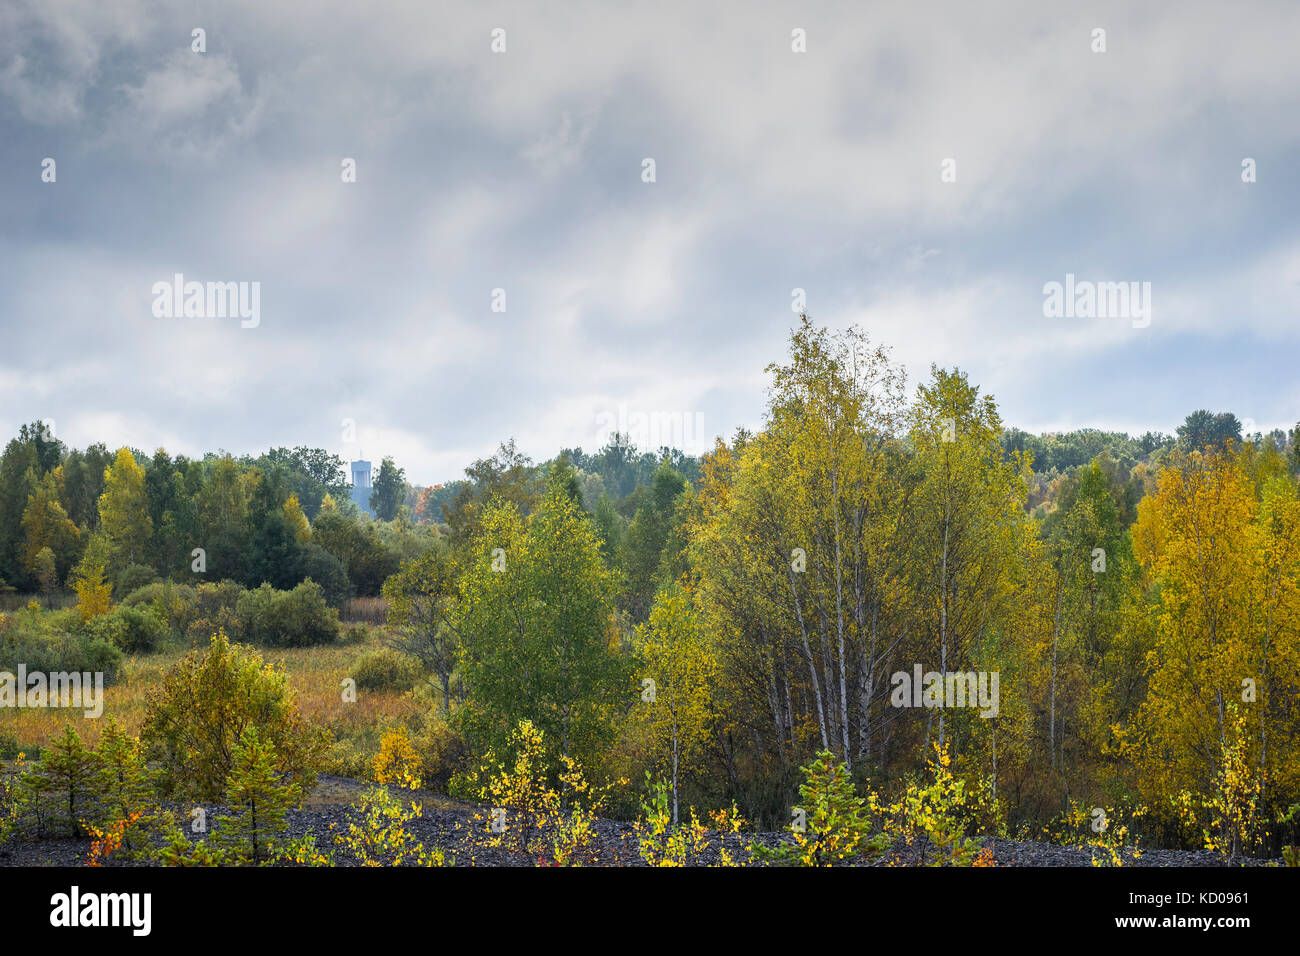 cloudy skyes over landscape with trees - Stock Image